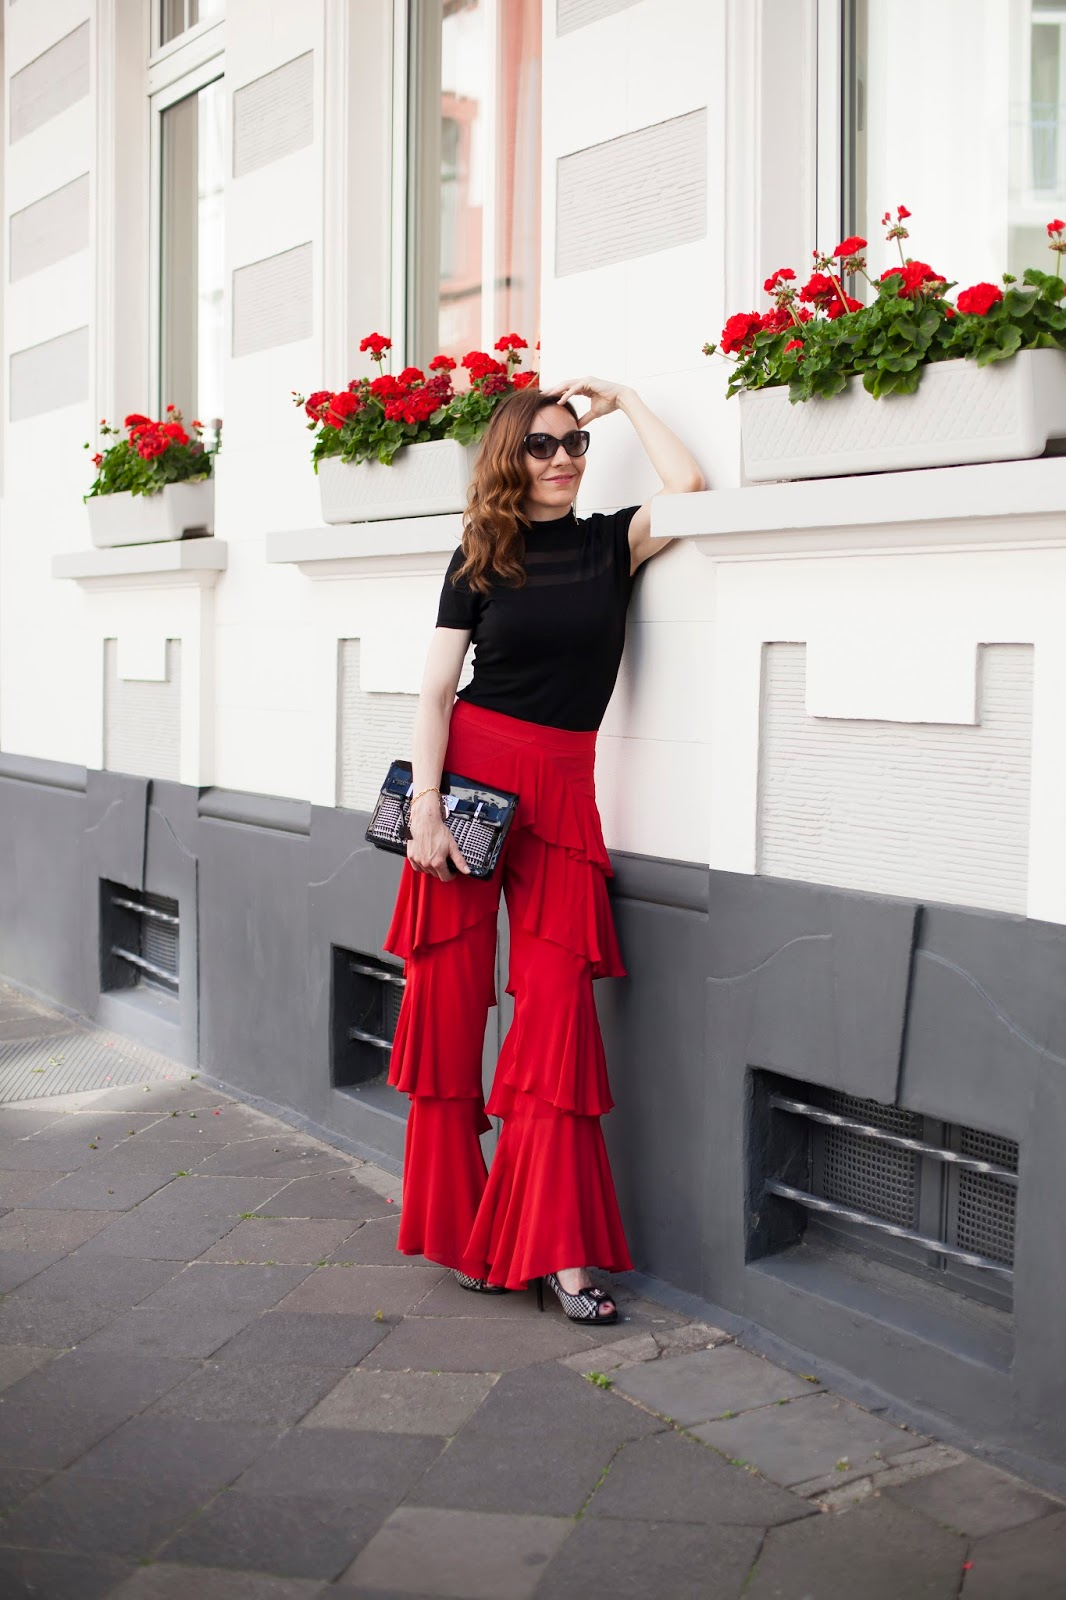 Fashion Blog Düsseldorf, today i am wearing in high red class